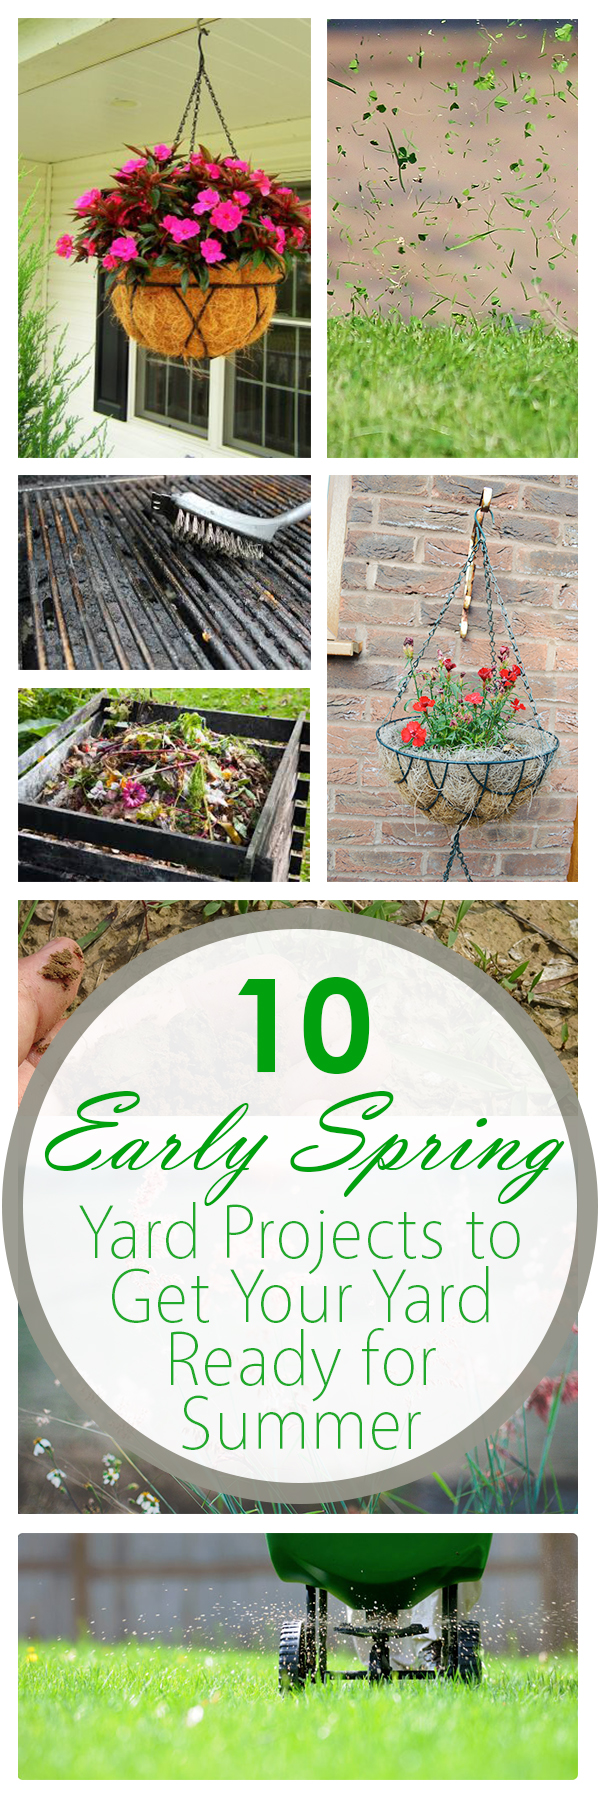 10 Early Spring Yard Projects to Get Your Yard Ready for Summer